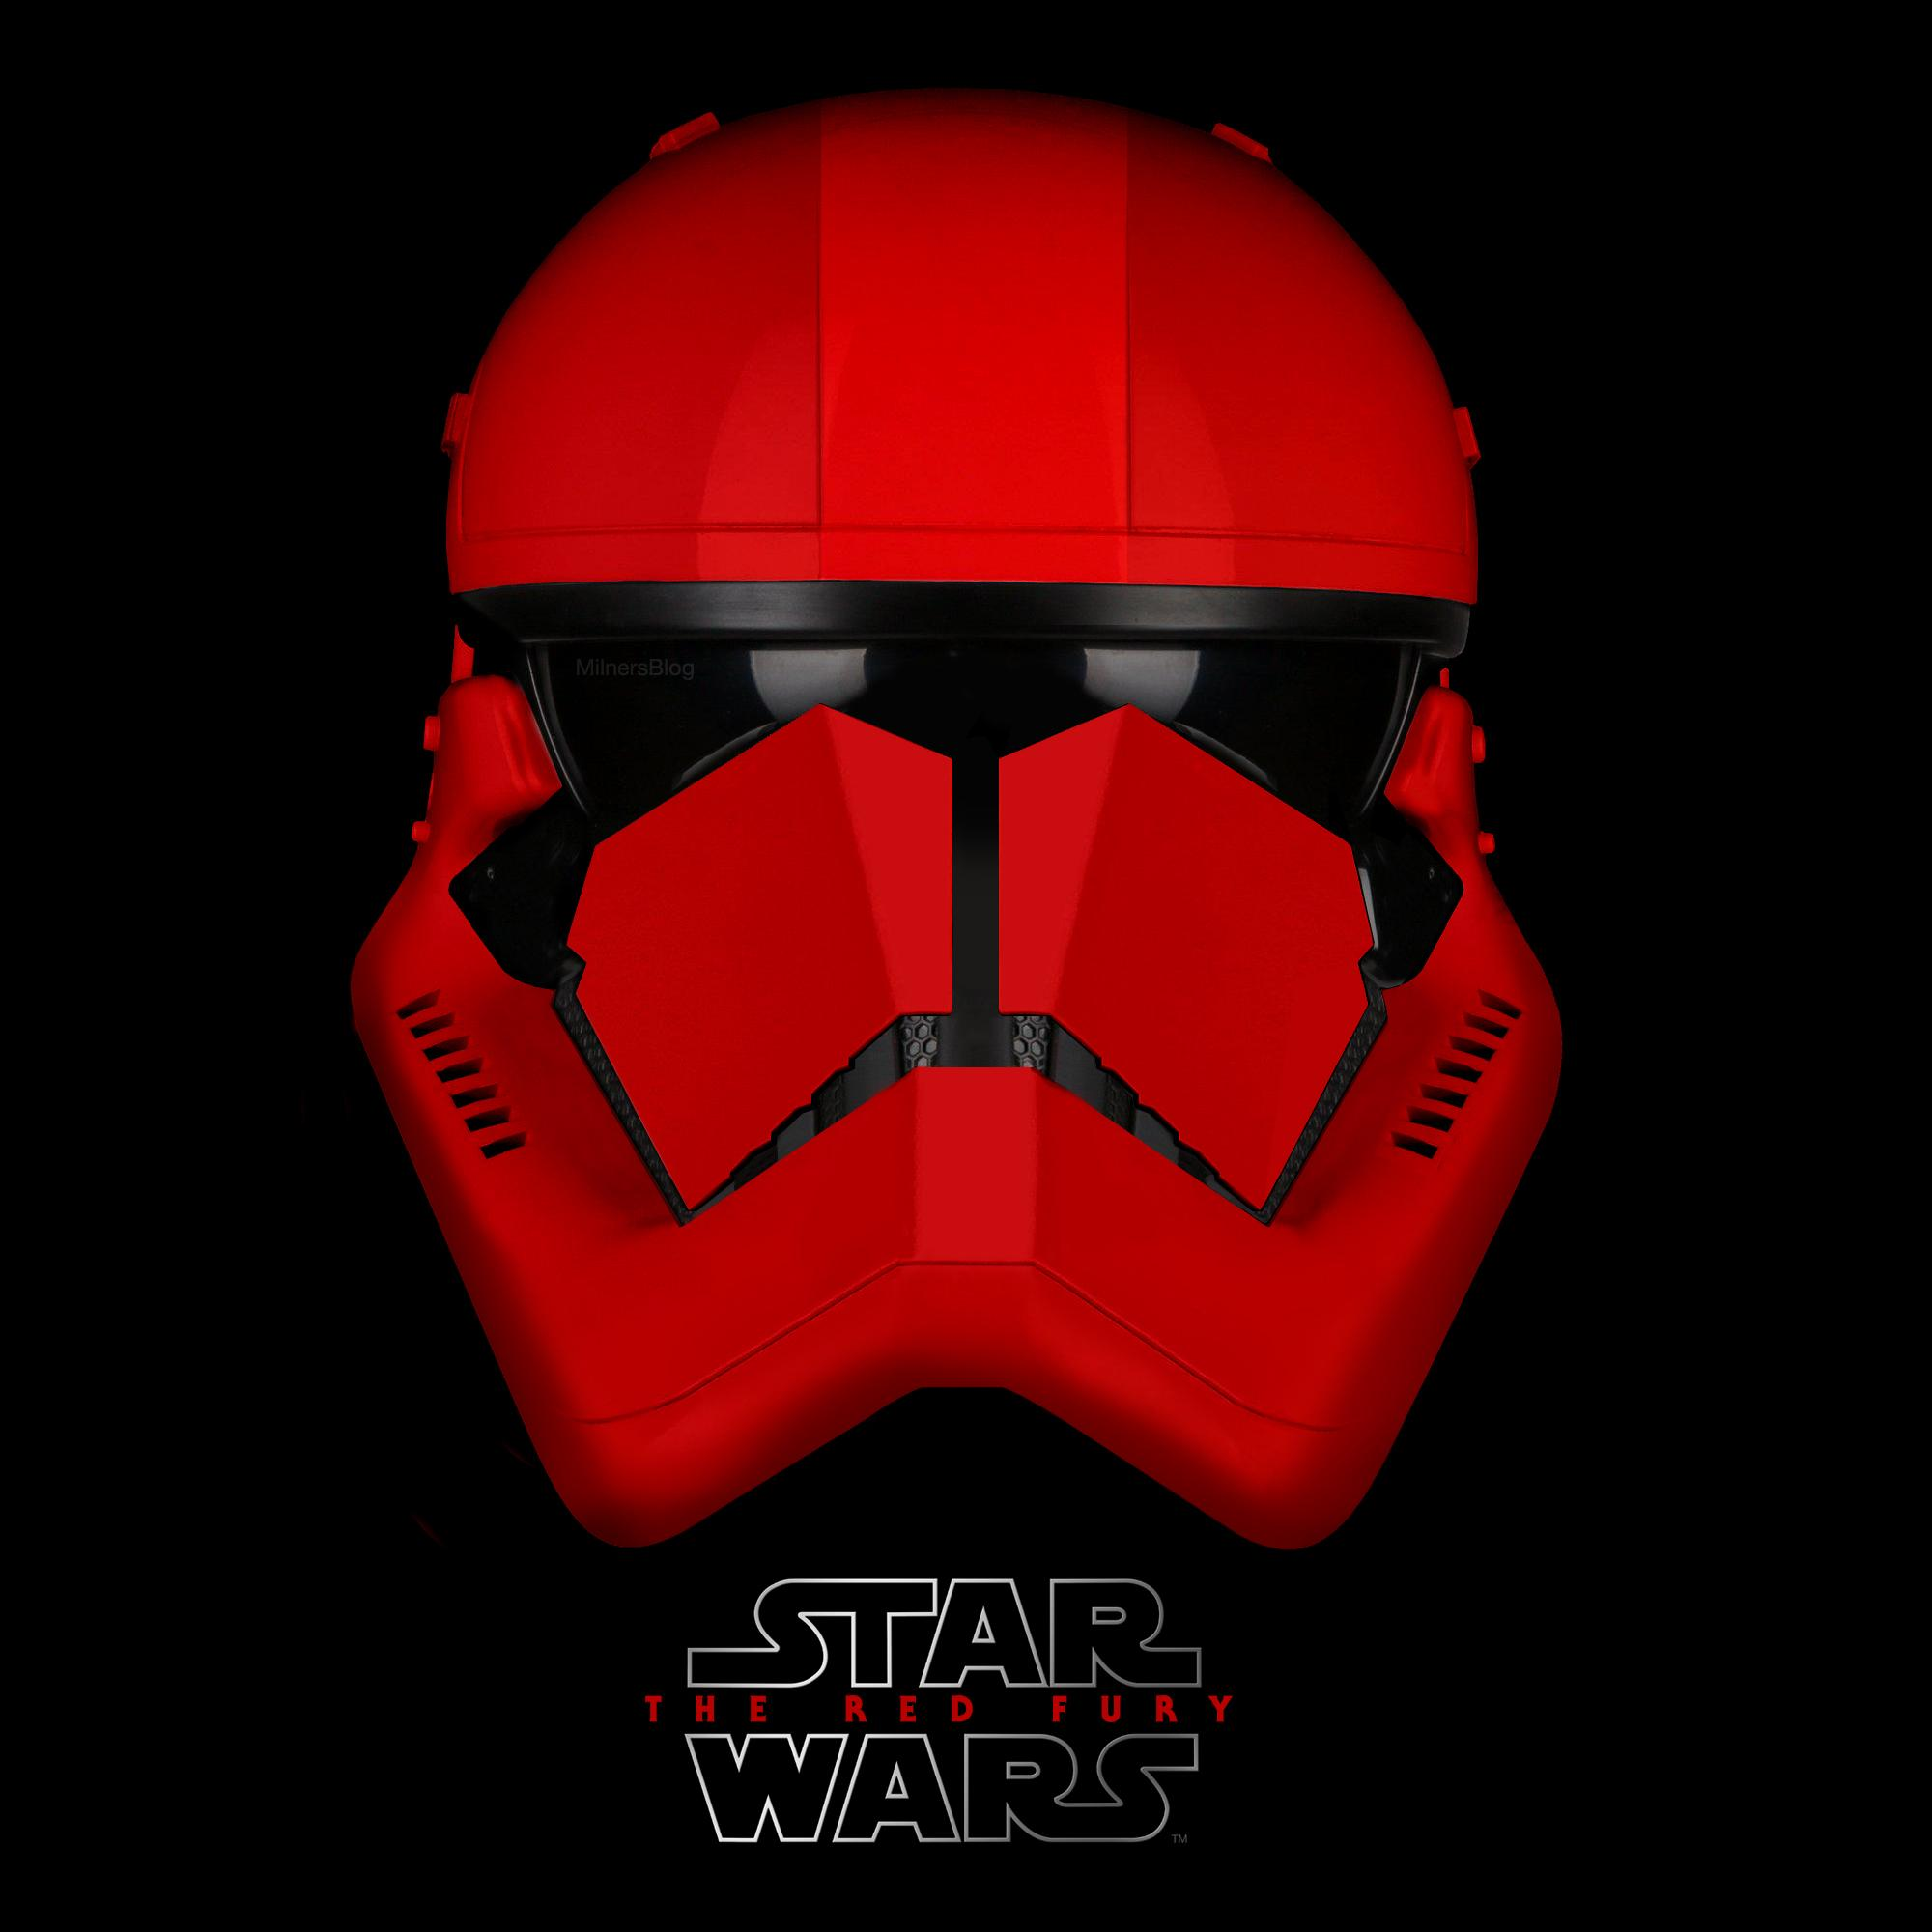 Star Wars The Rise Of Skywalker Red Sith Trooper Wallpapers Wallpaper Cave